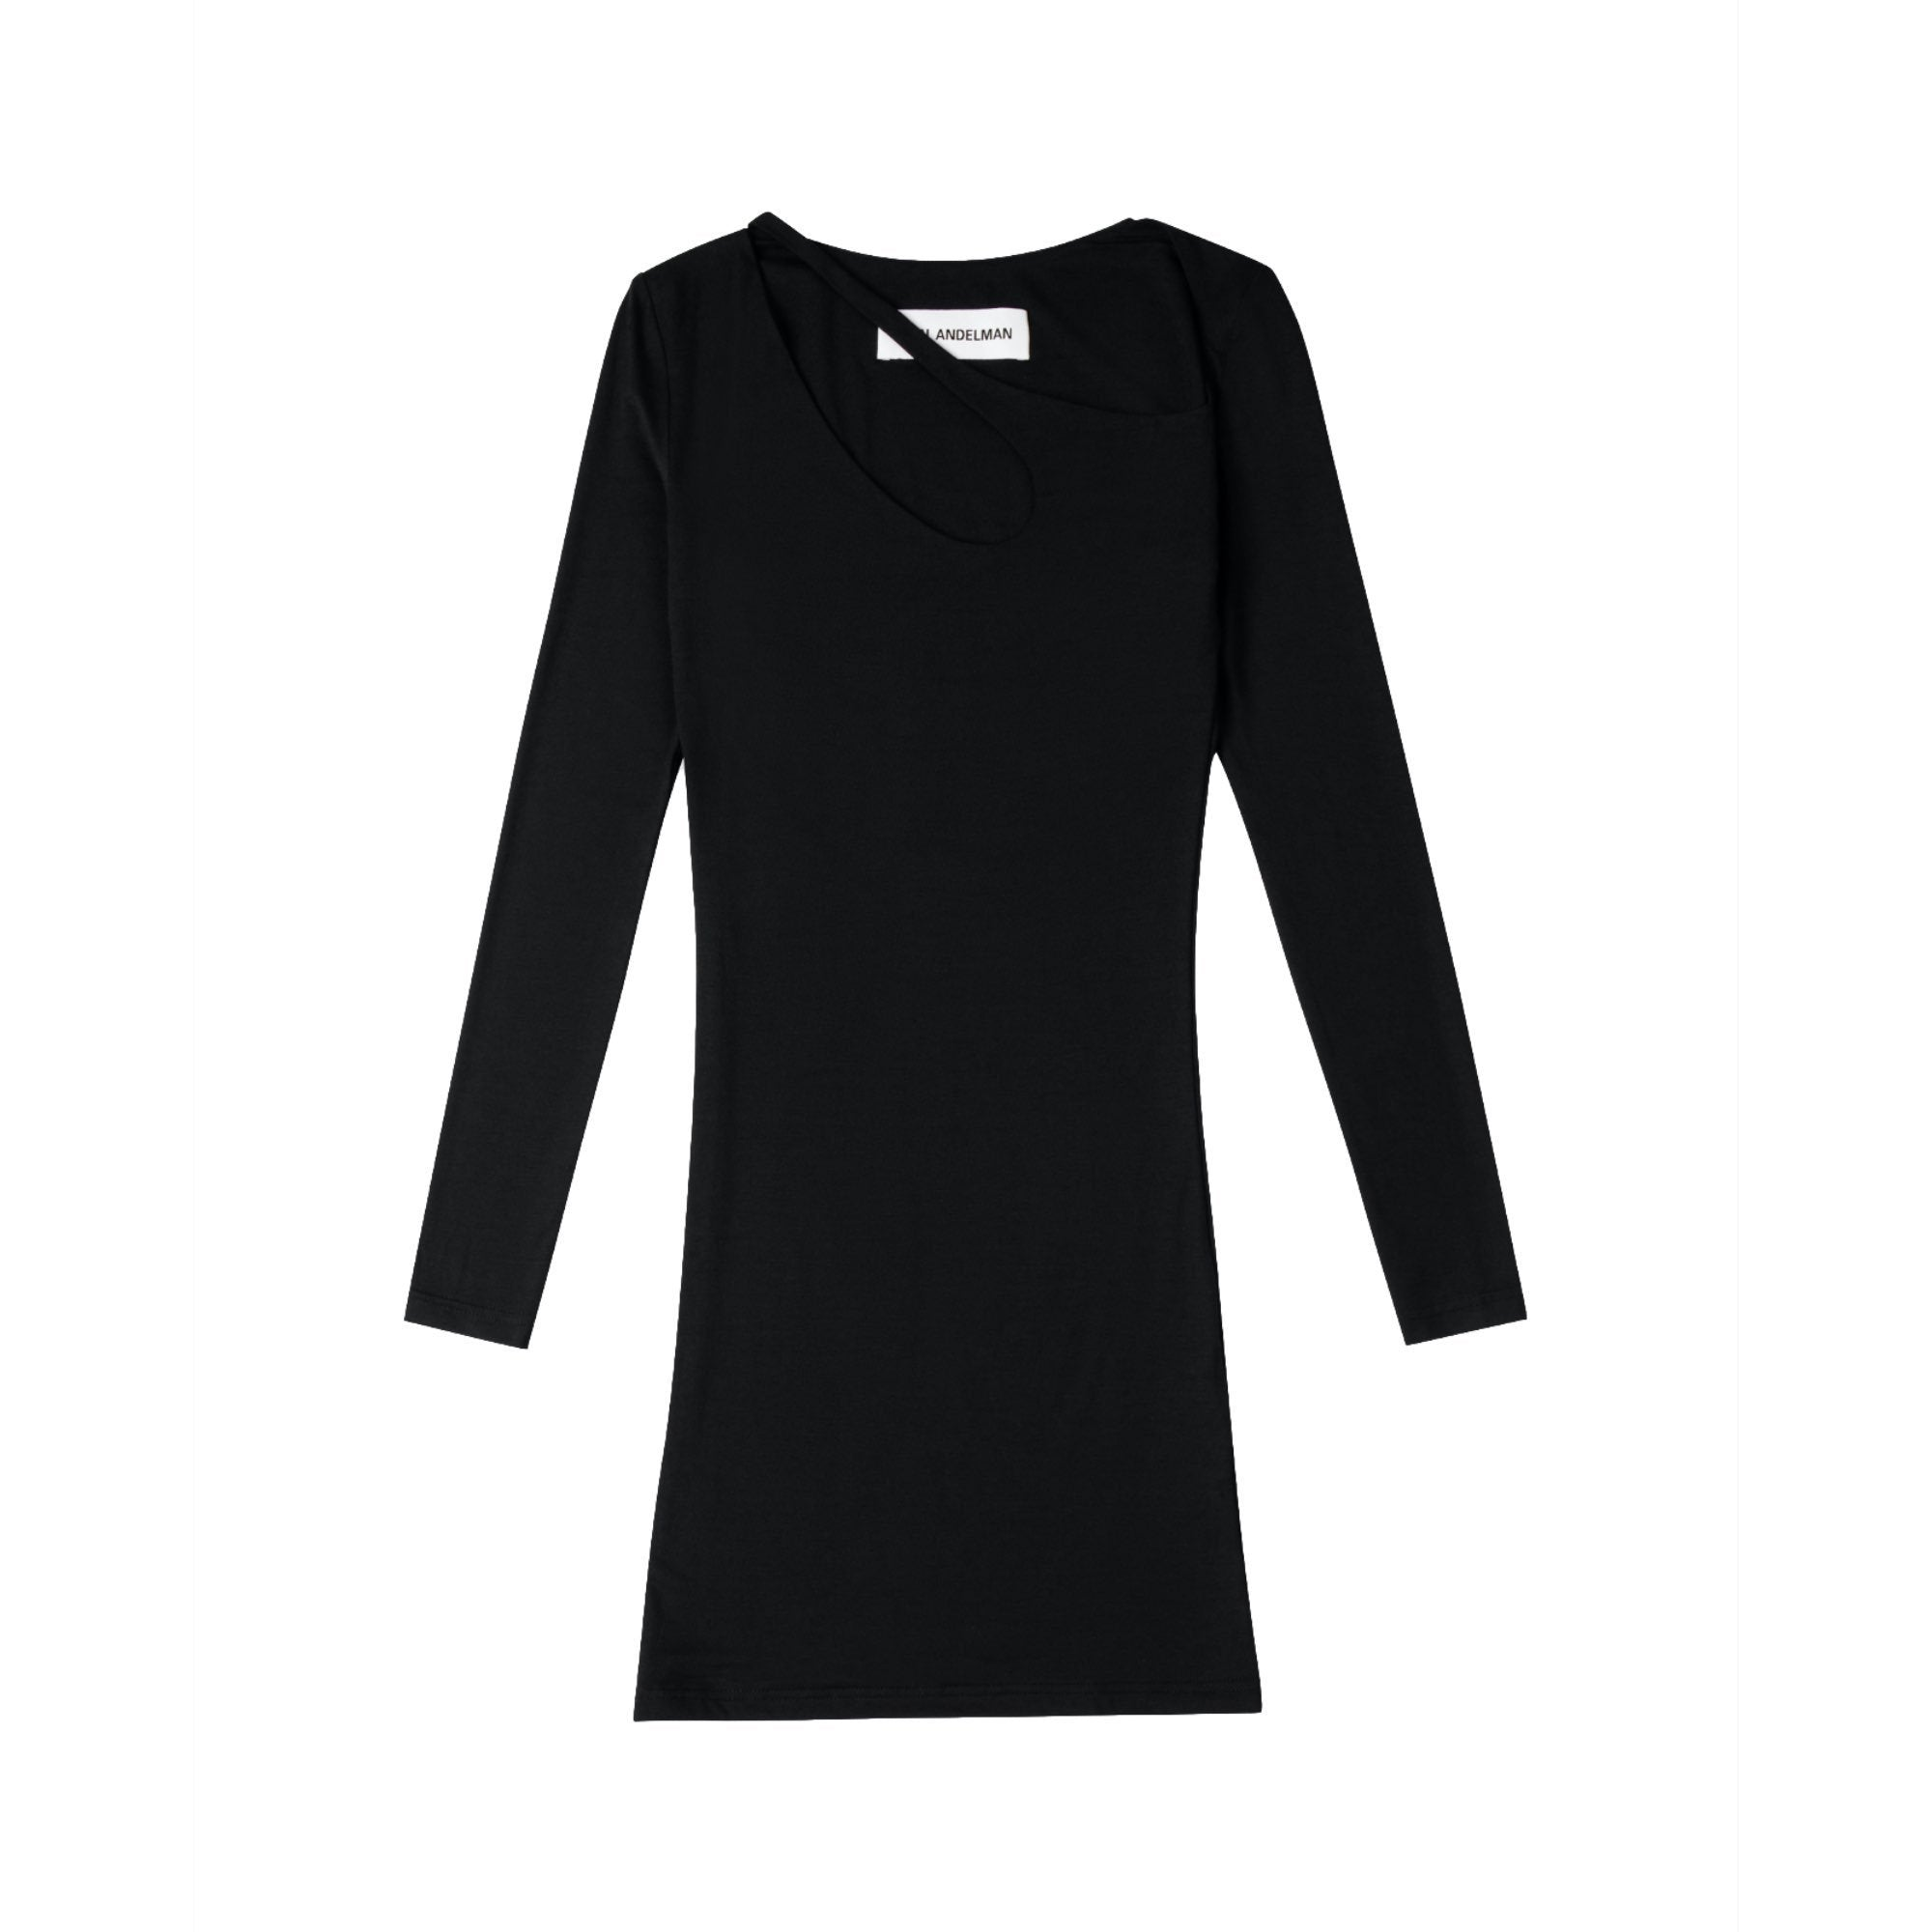 ANN ANDELMAN Black U-Neck Dress | MADA IN CHINA